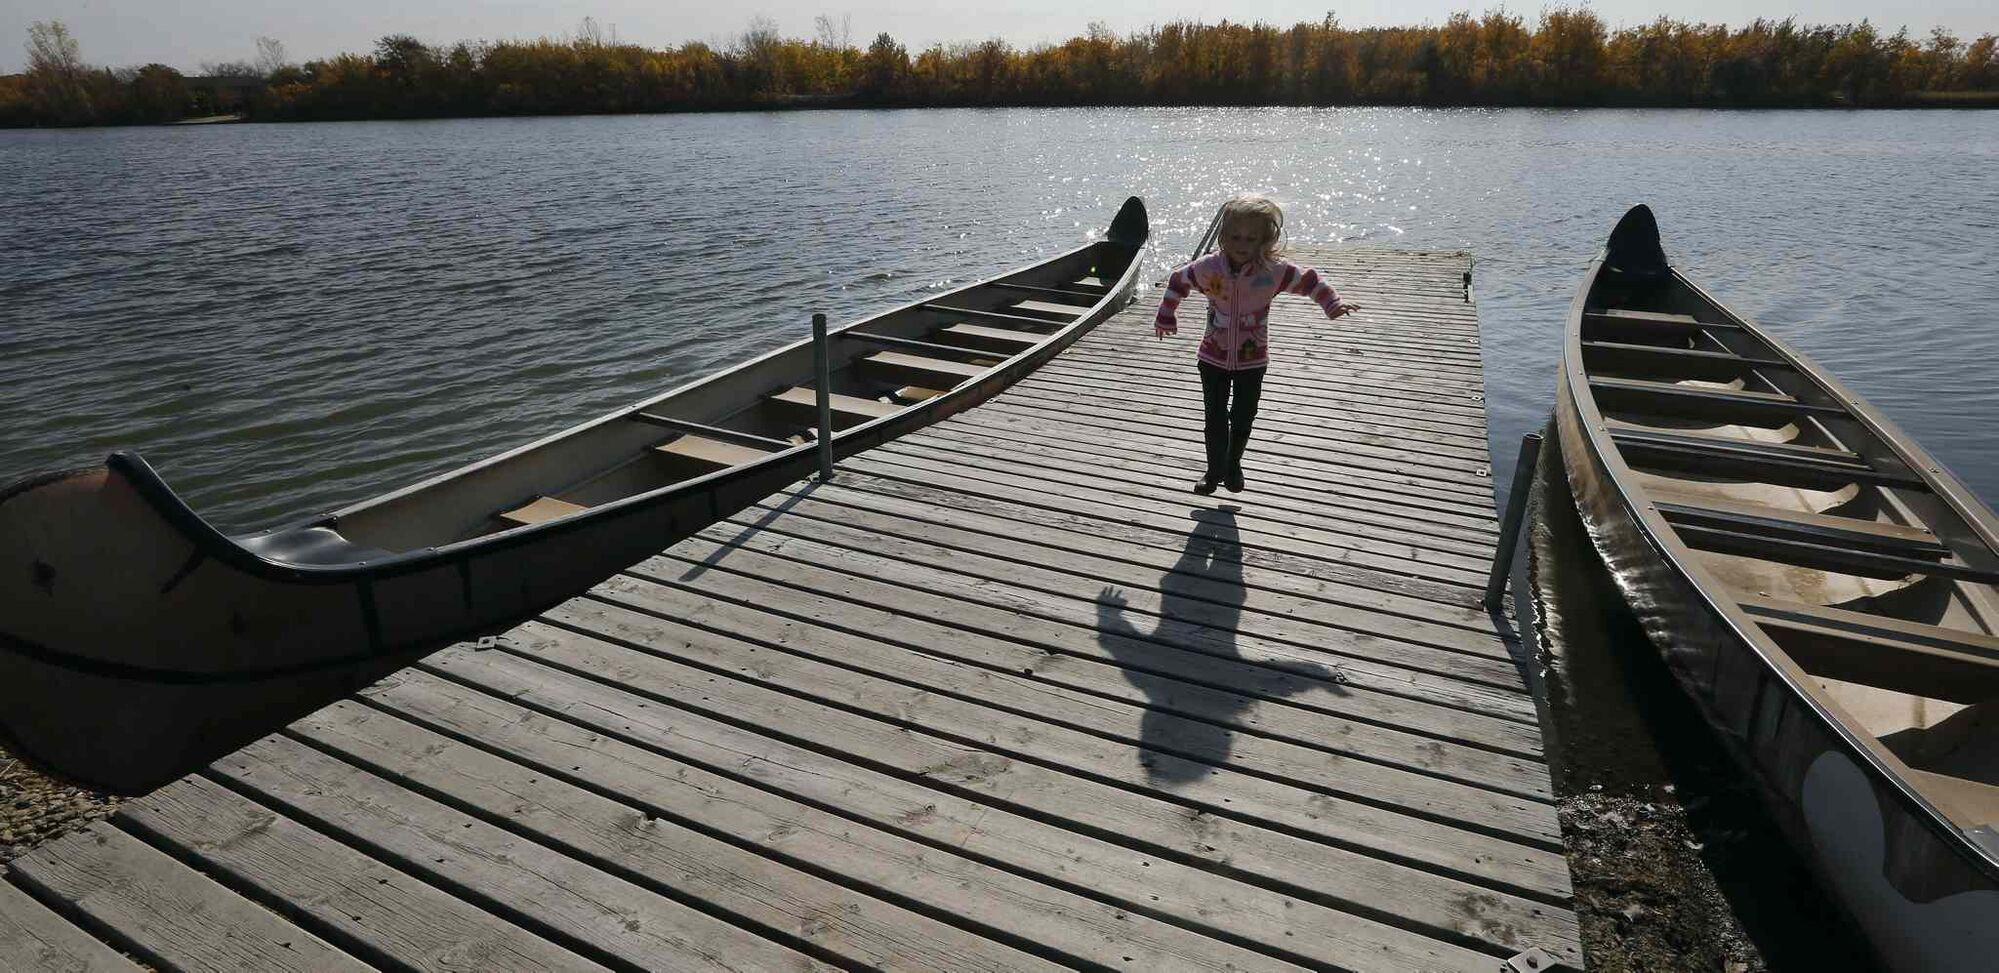 Docks are a starting point for canoeing or fishing, an entirely different fall activity.